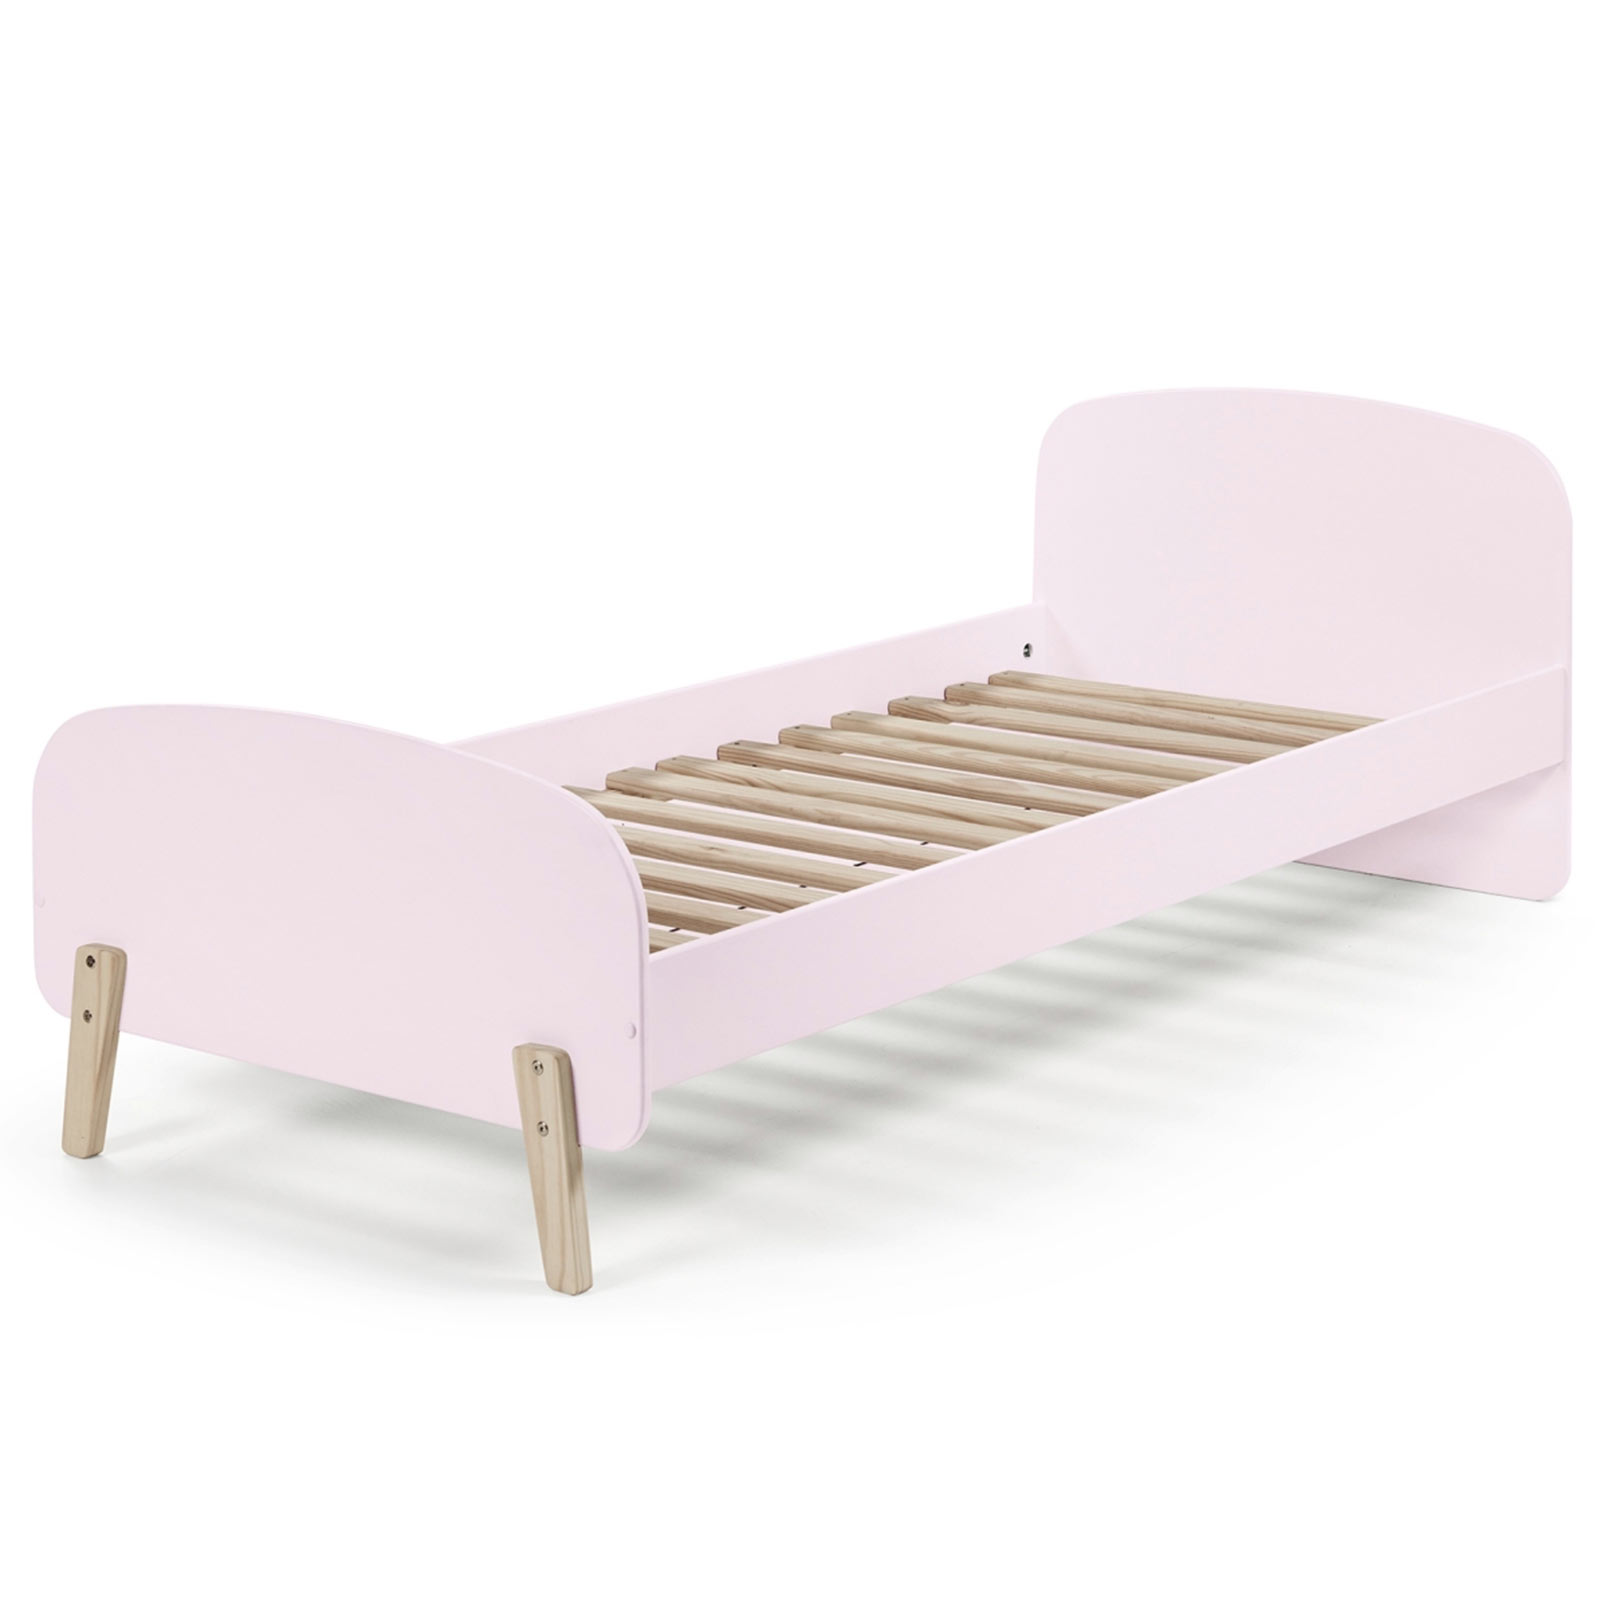 Einzelbett KIDDY - rosa-Kiefer massiv - 90x200 cm